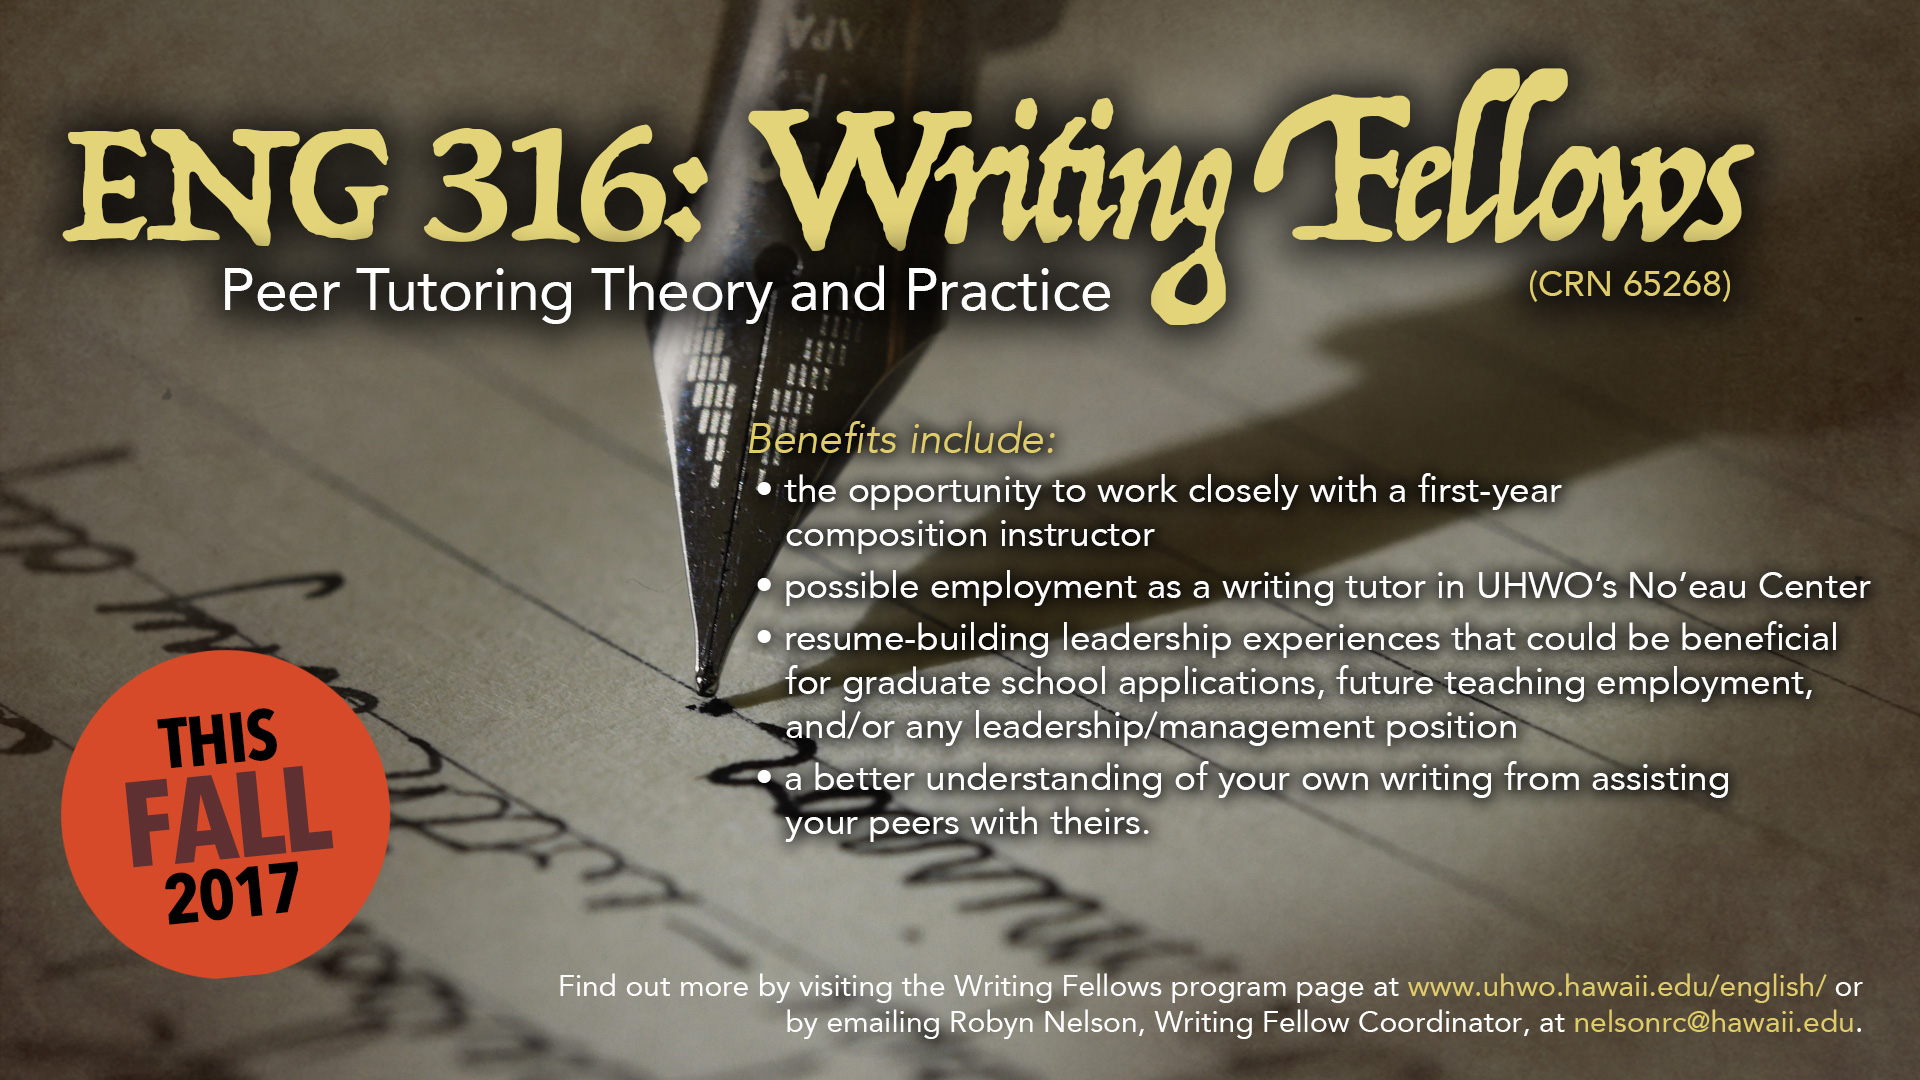 ENG 316: Writing Fellows Program flyer